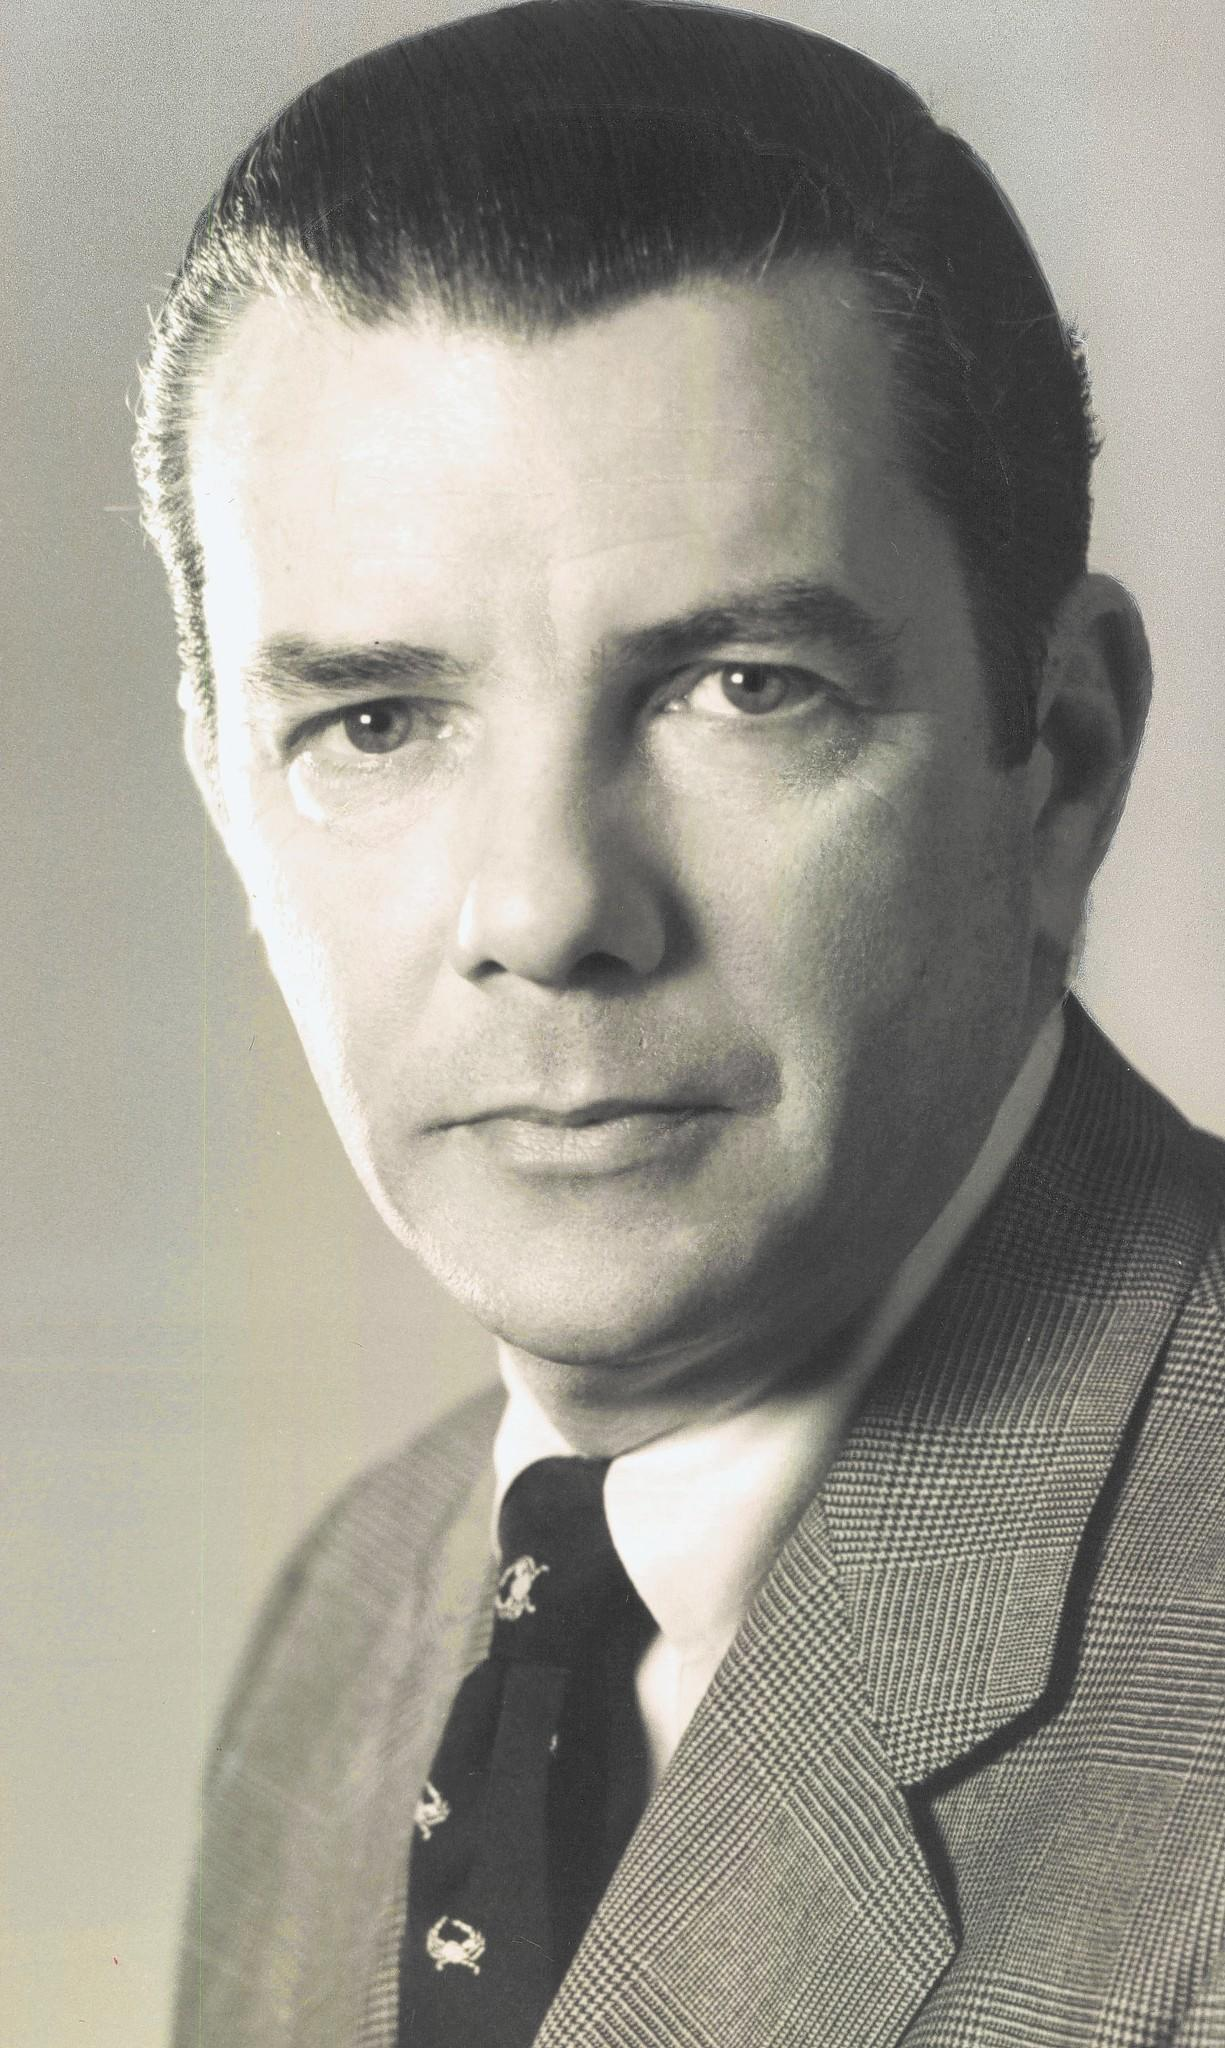 John G Schisler, shown in 1978